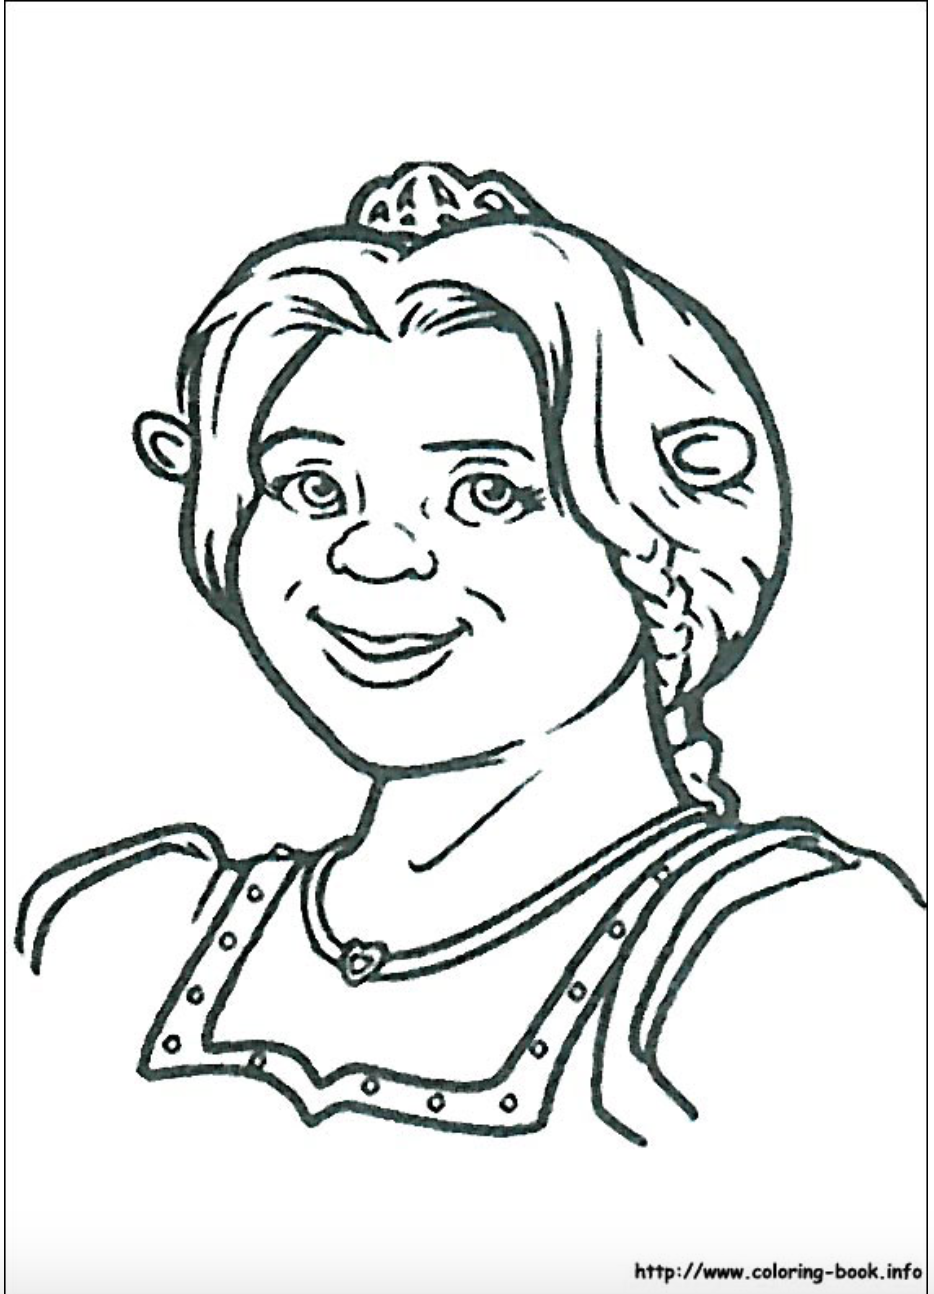 shrek fiona coloring pages - photo#18